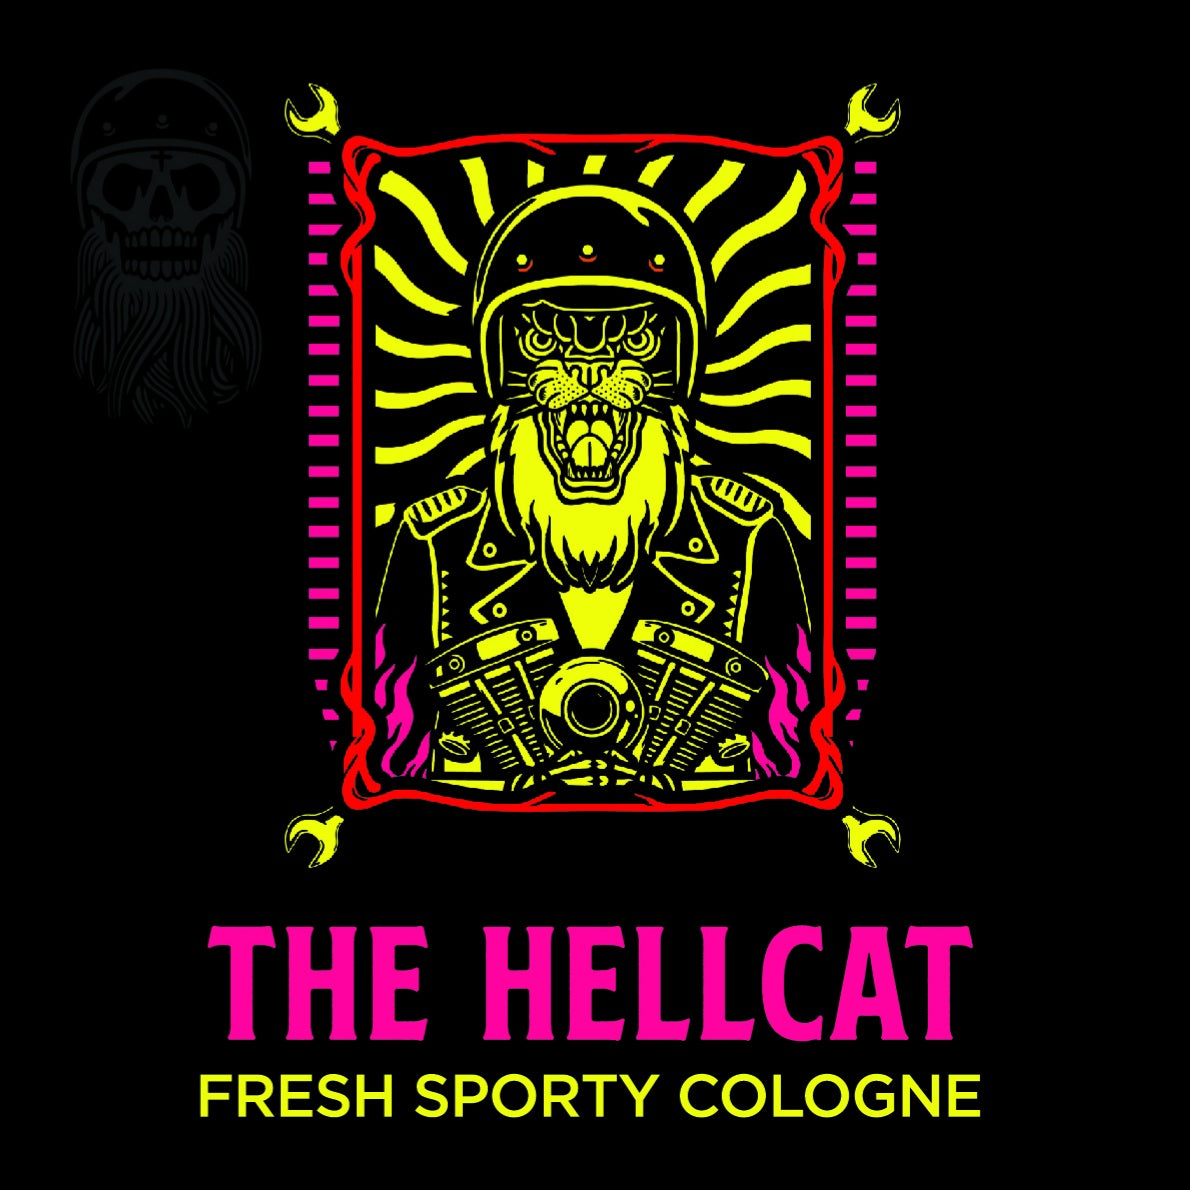 THE HELLCAT (fresh sporty cologne)